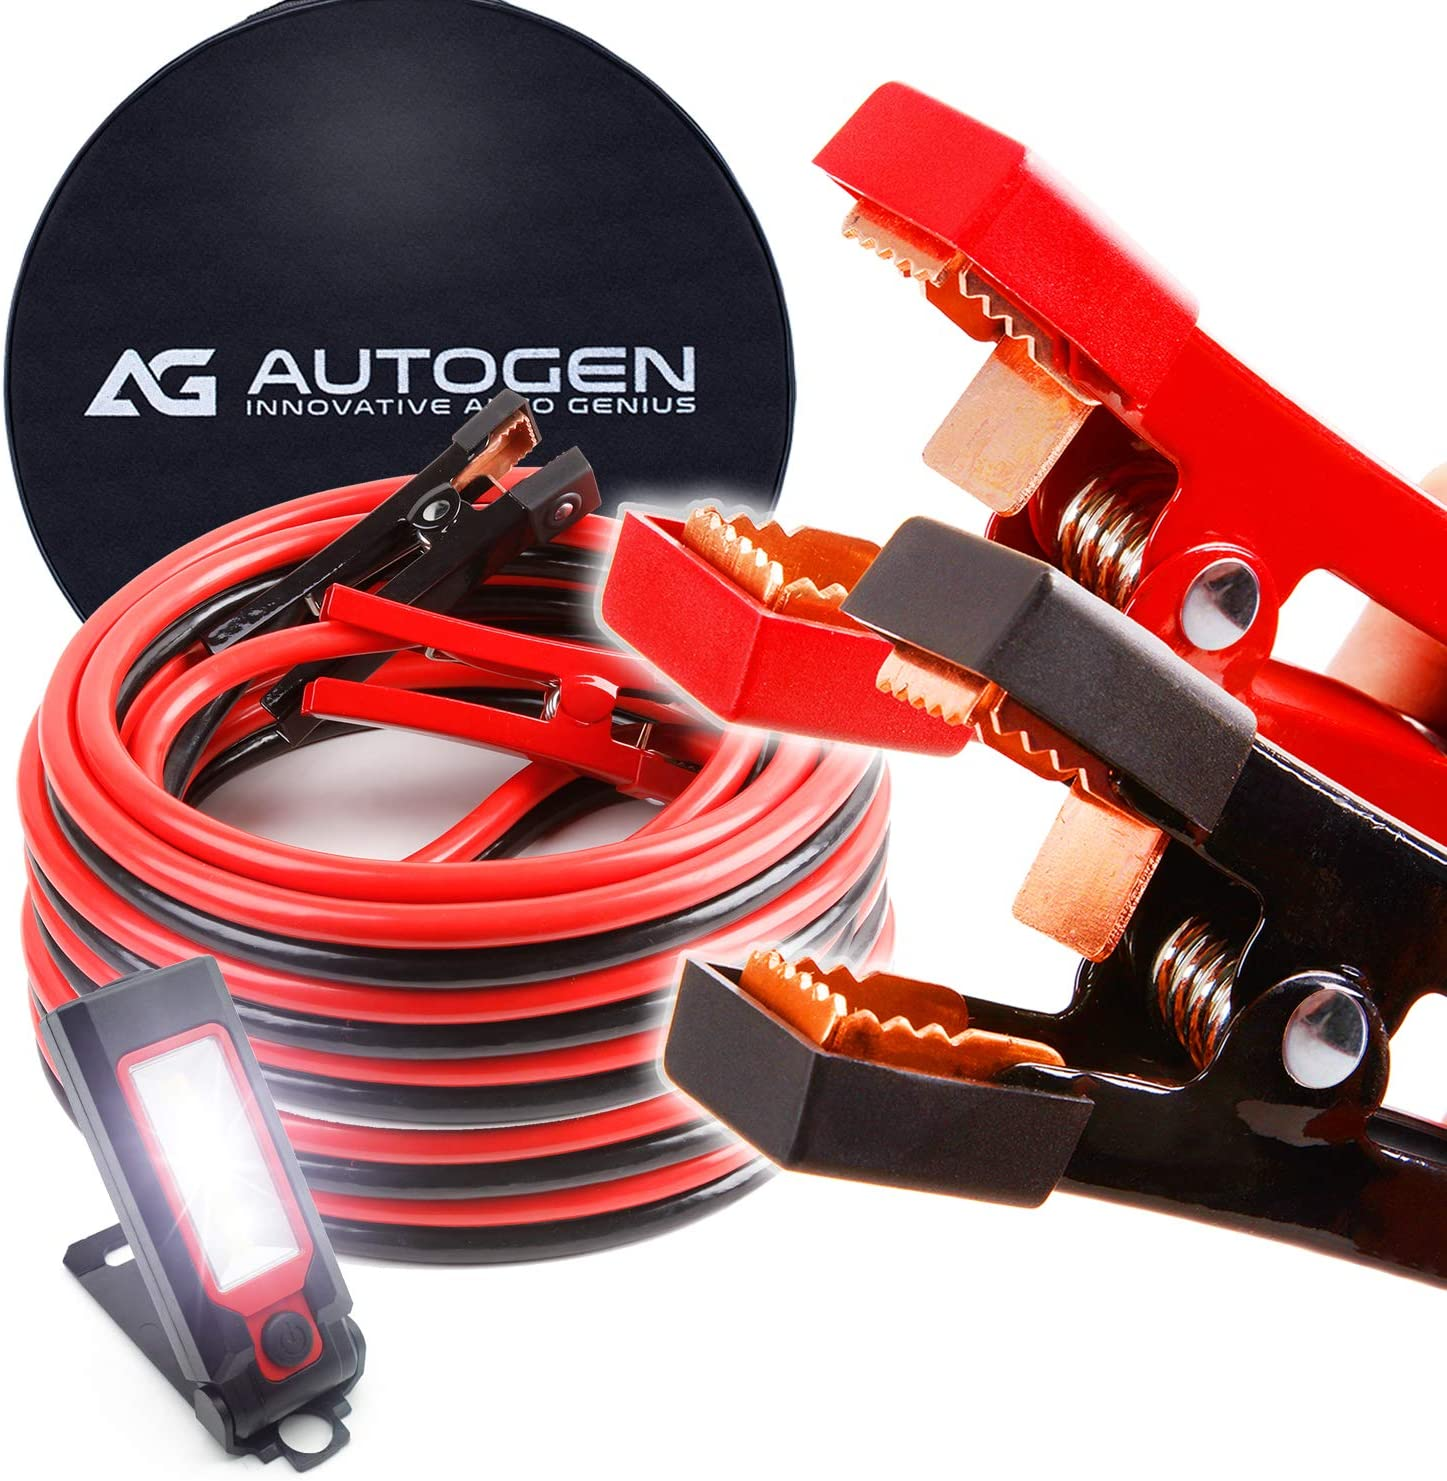 AUTOGEN Booster Cable 1 Gauge 25Ft 900AMP Heavy Duty Jumper Battery Cables with Carry Bag for Car Battery Jump Starter Cables for Heavy Duty Trucks